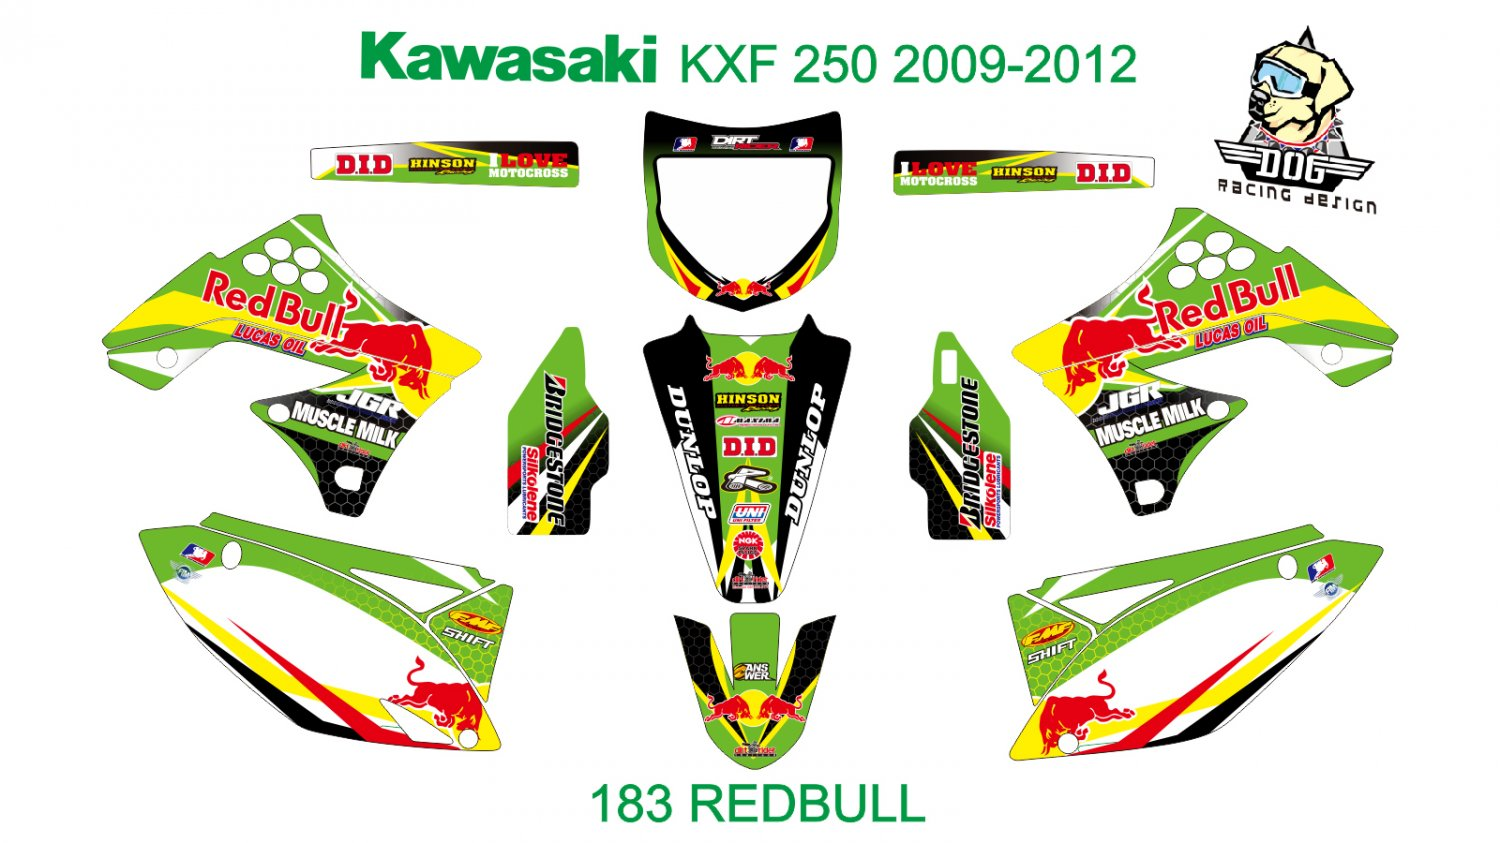 KAWASAKI KXF 250 2009-2012 GRAPHIC DECAL KIT CODE.183